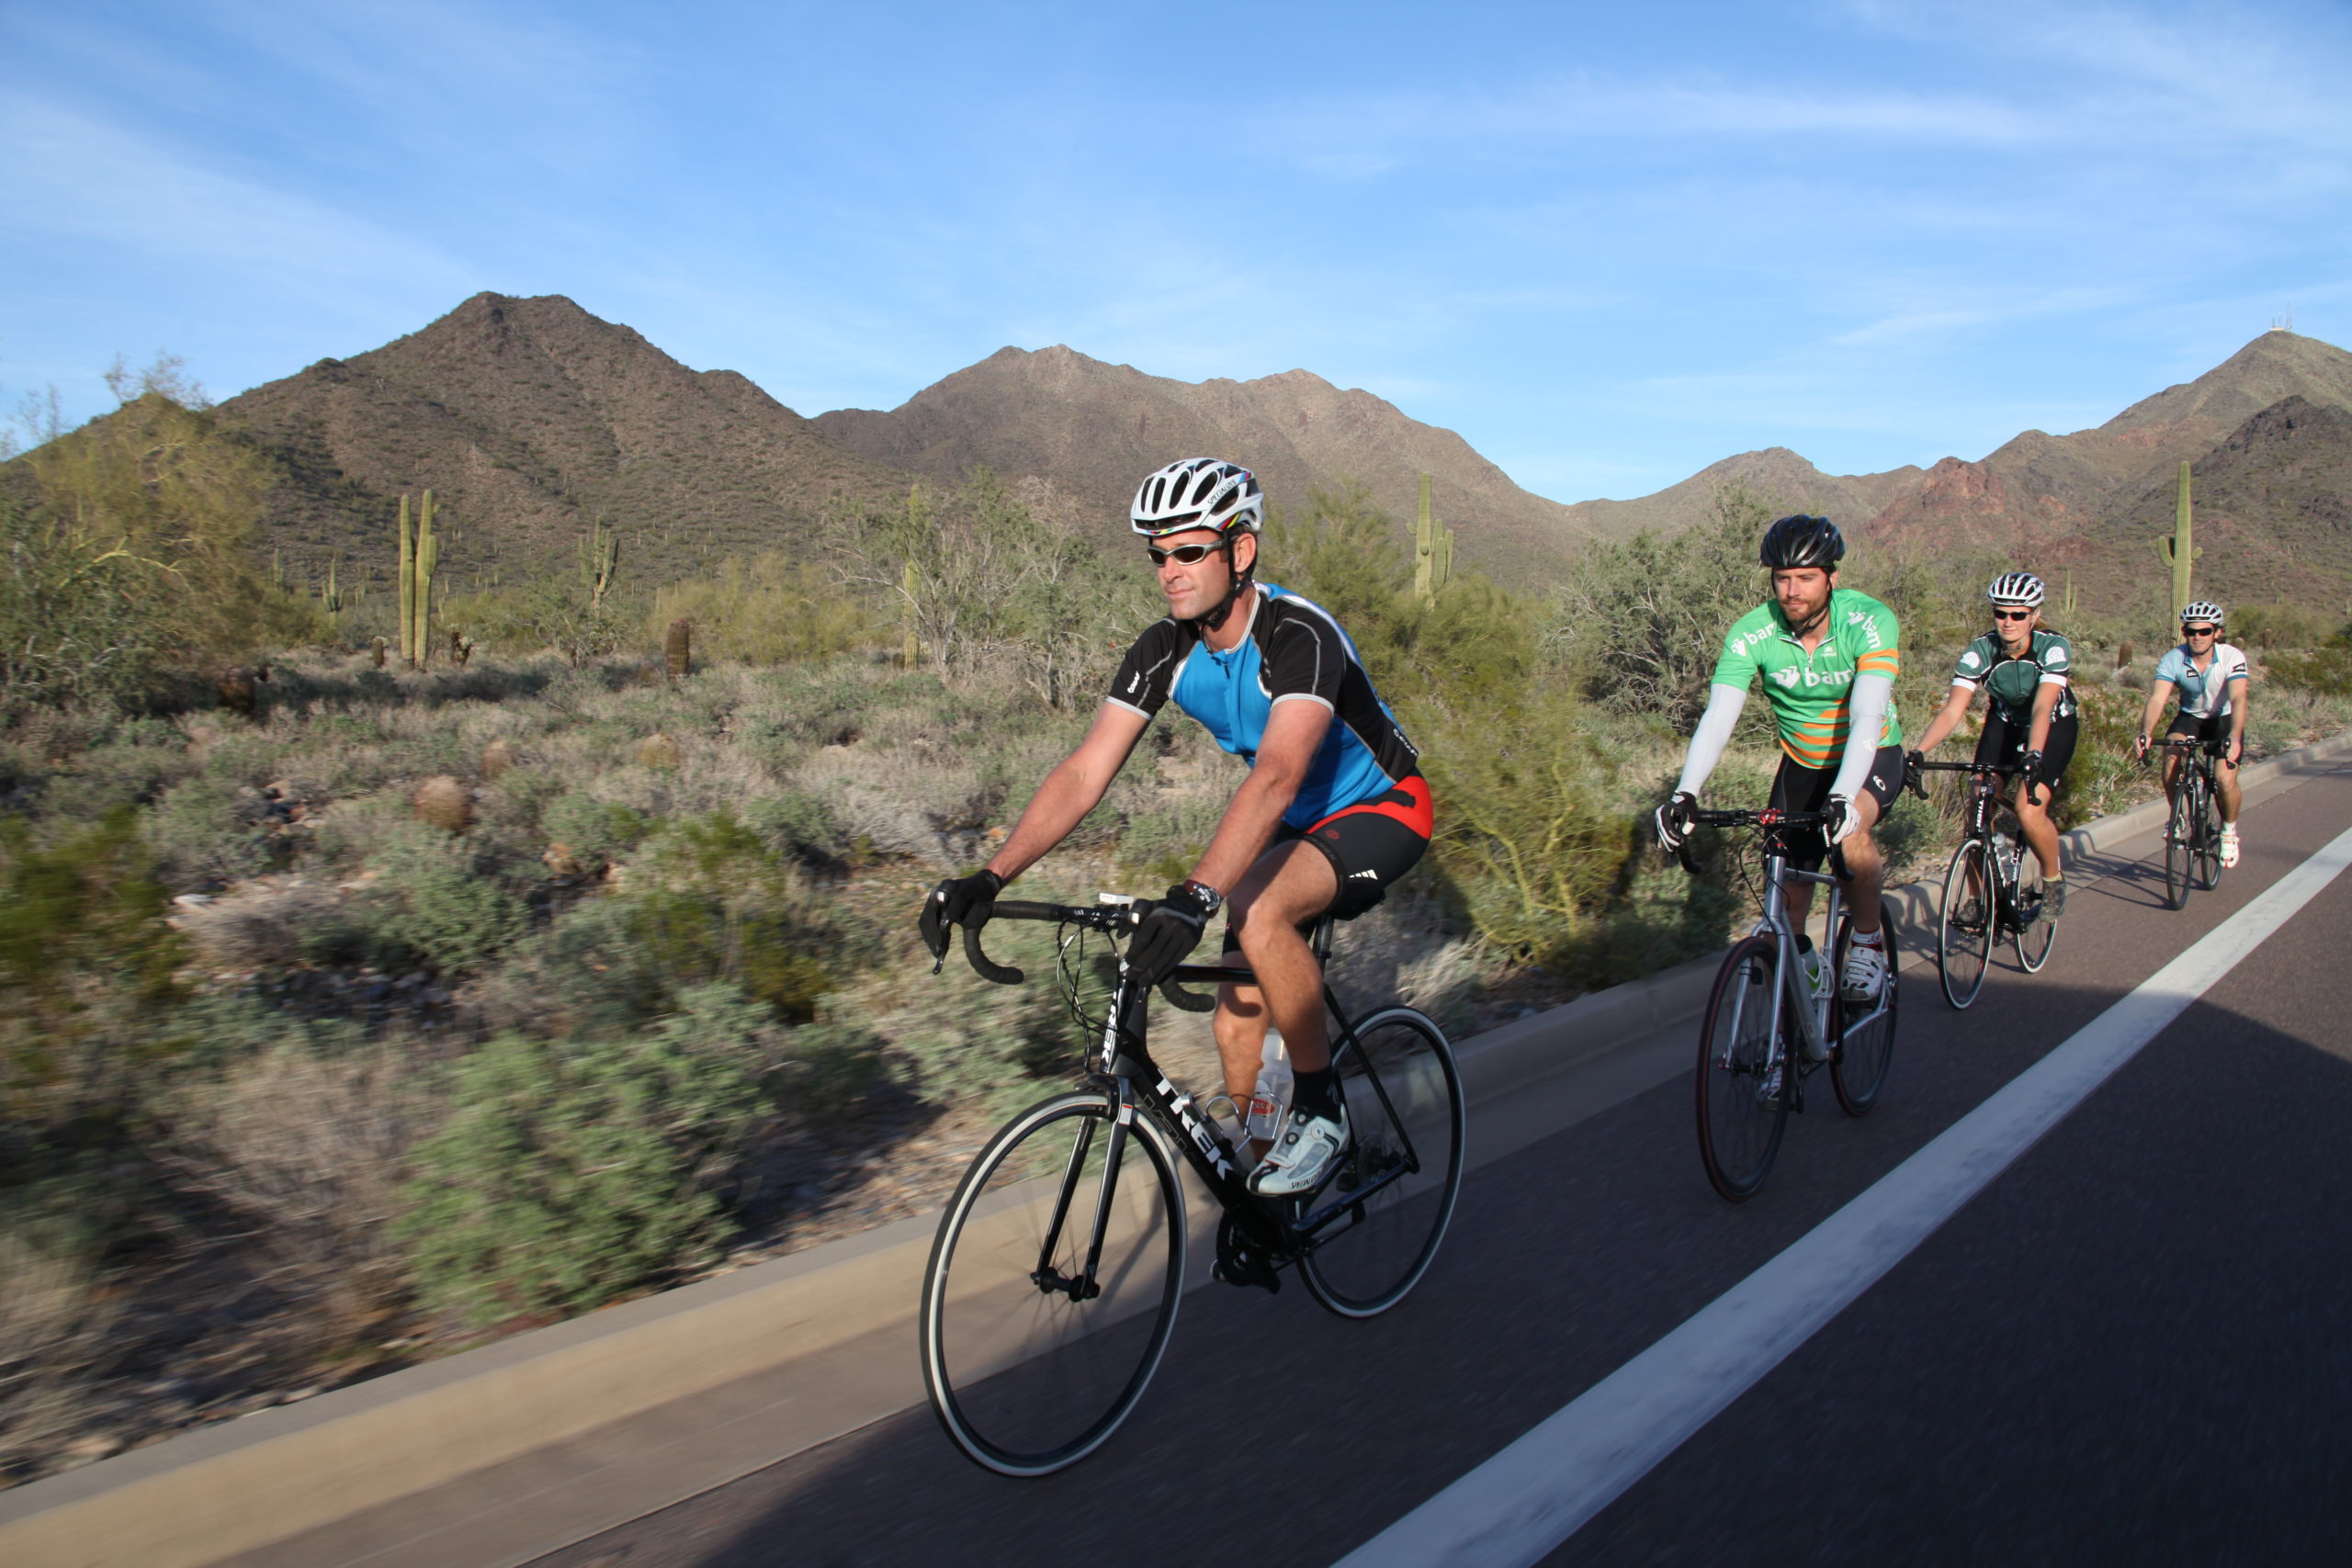 Road bike tour Scottsdale Arizona